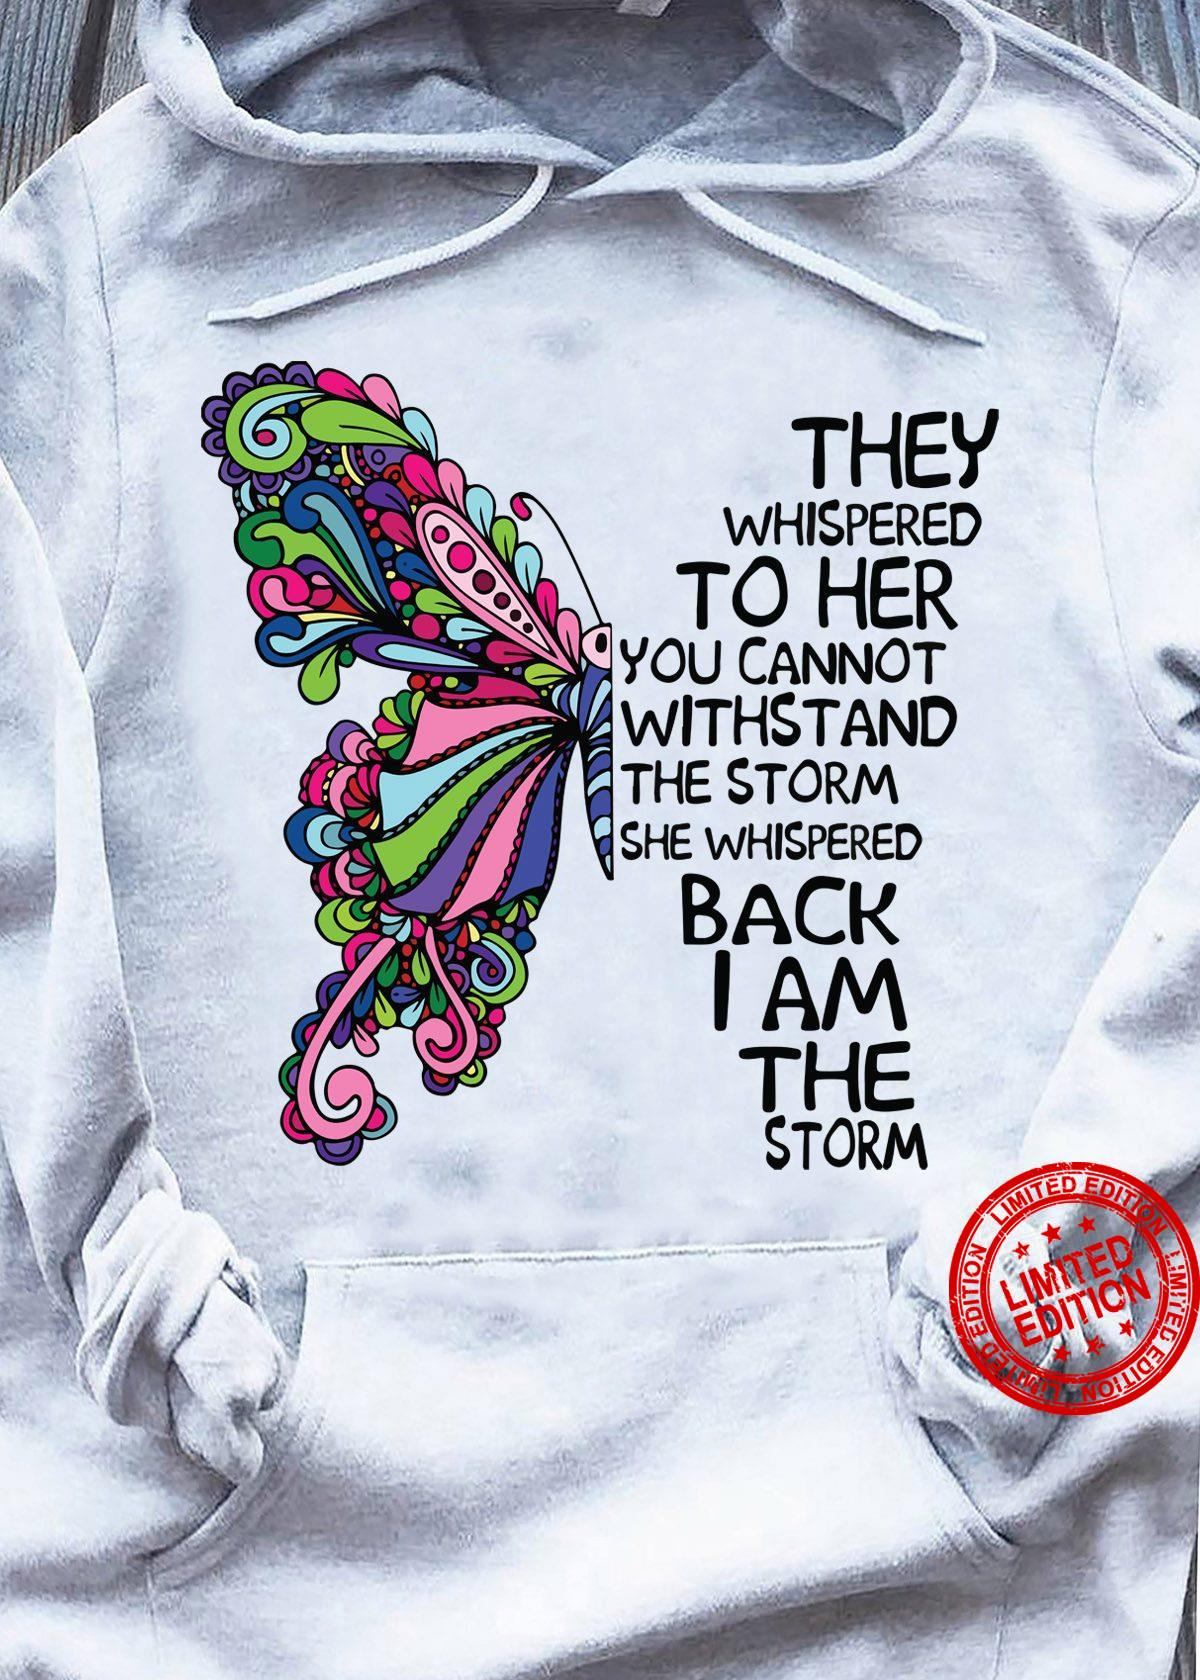 They Whispered To Her You Cannot Withstand The Storm She Whispered Shirt